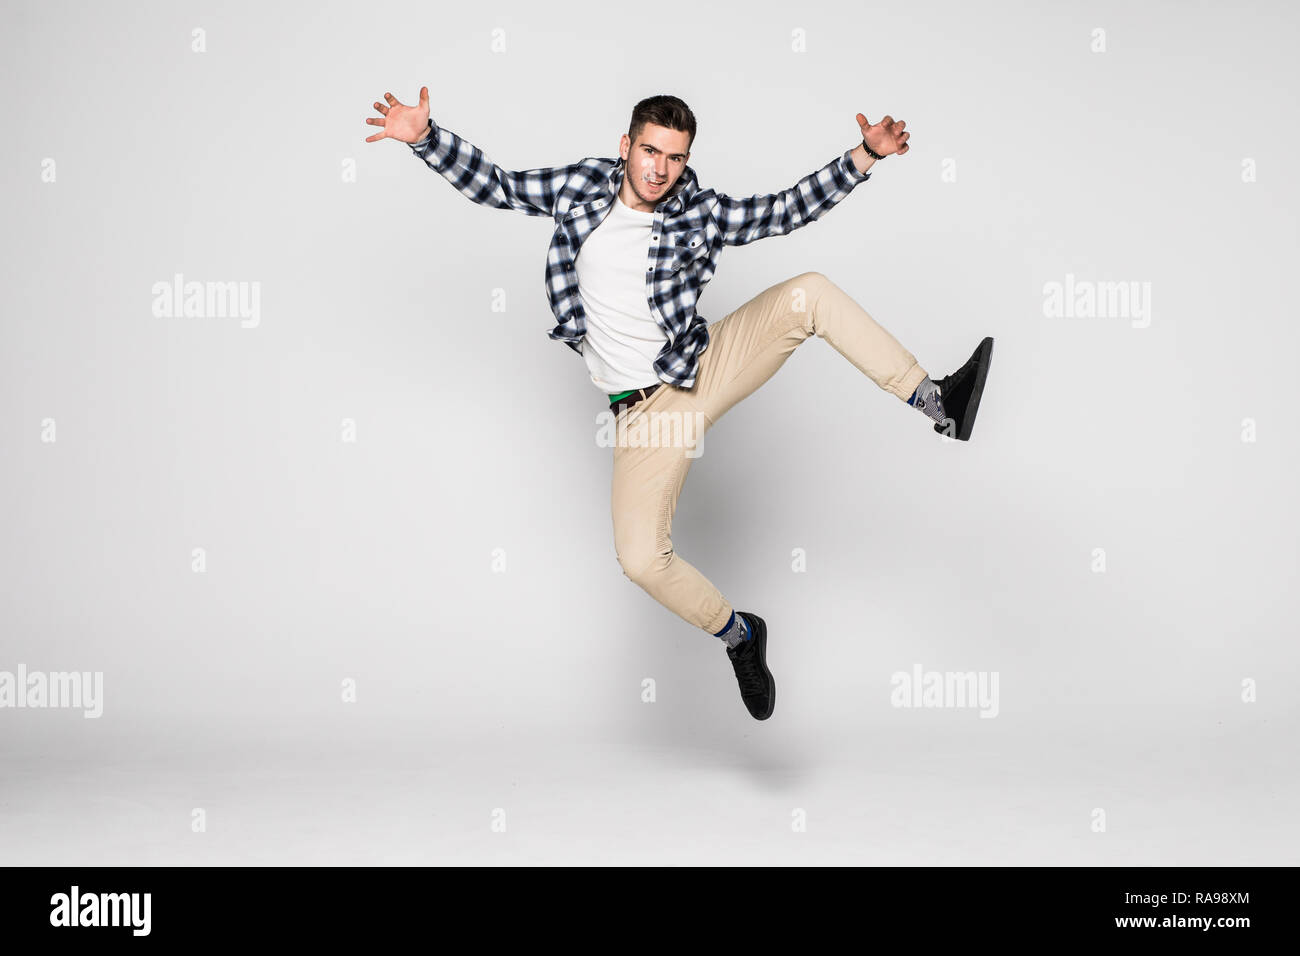 Dynamic, image. Full length, legs, body, size profile side view portrait of handsome attractive man jupm isolated on white background - Stock Image